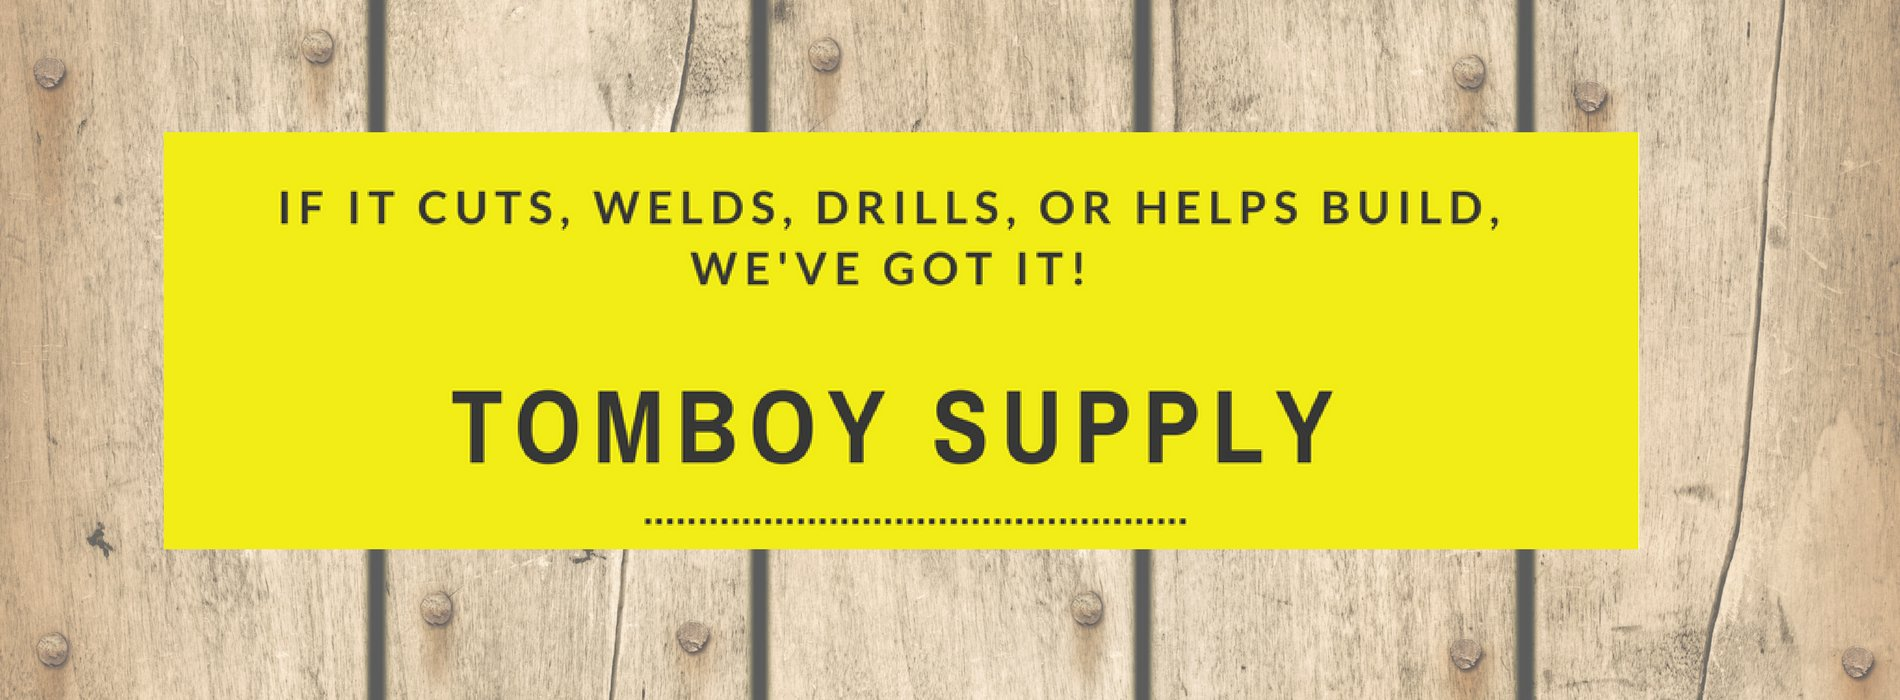 Need a tool quote?  Looking for a hard to find tool or accessory?